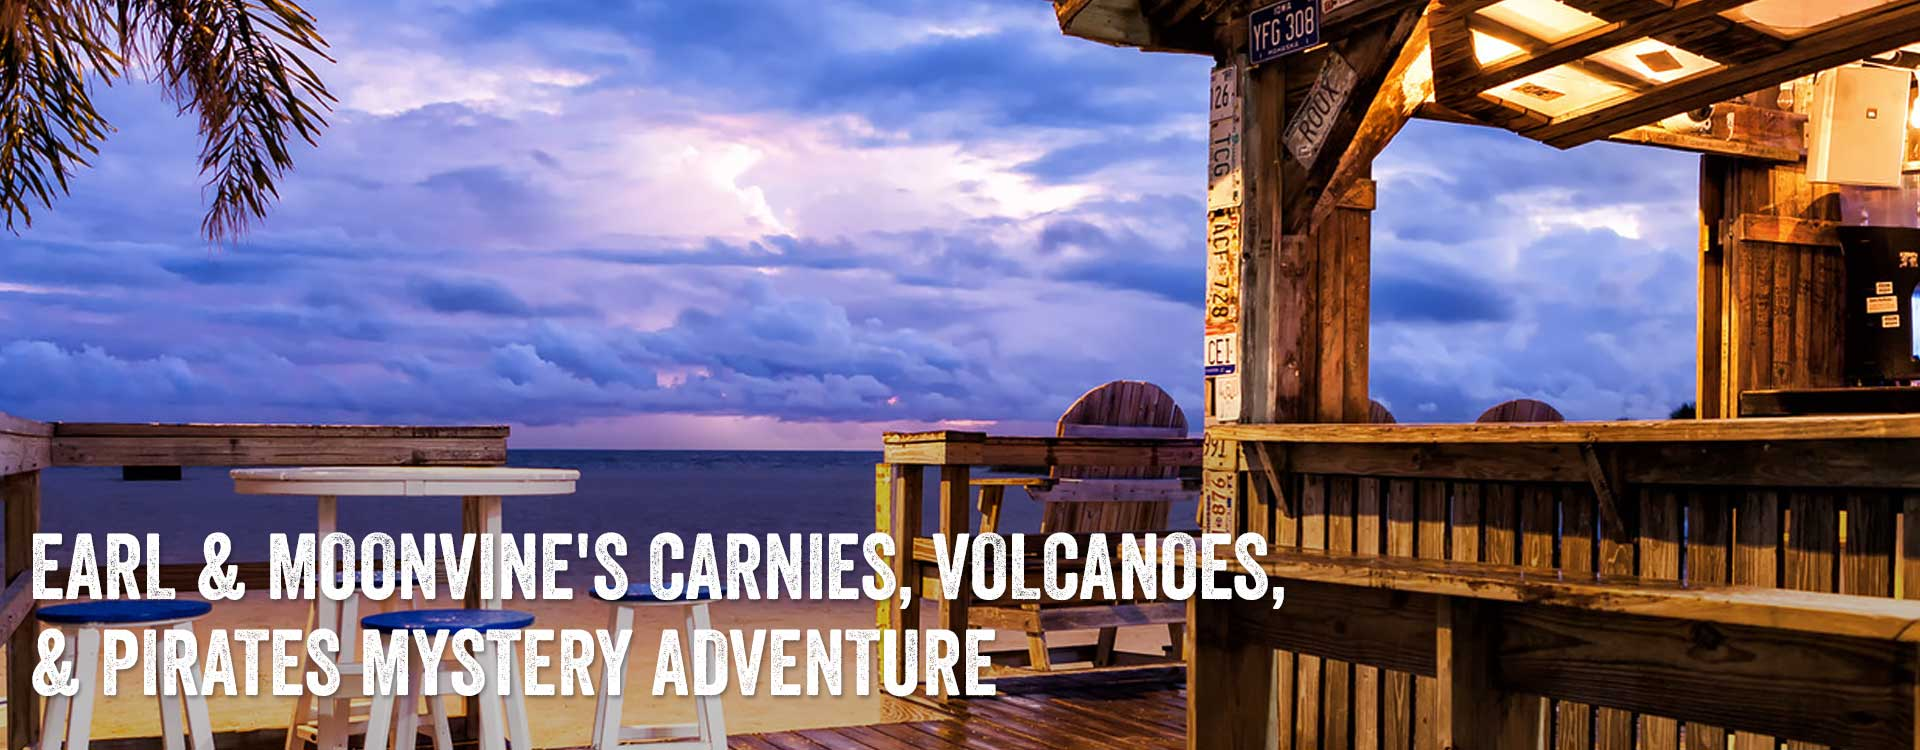 EARL & MOONVINE'S CARNIES, VOLCANOES, & PIRATES MYSTERY ADVENTURE